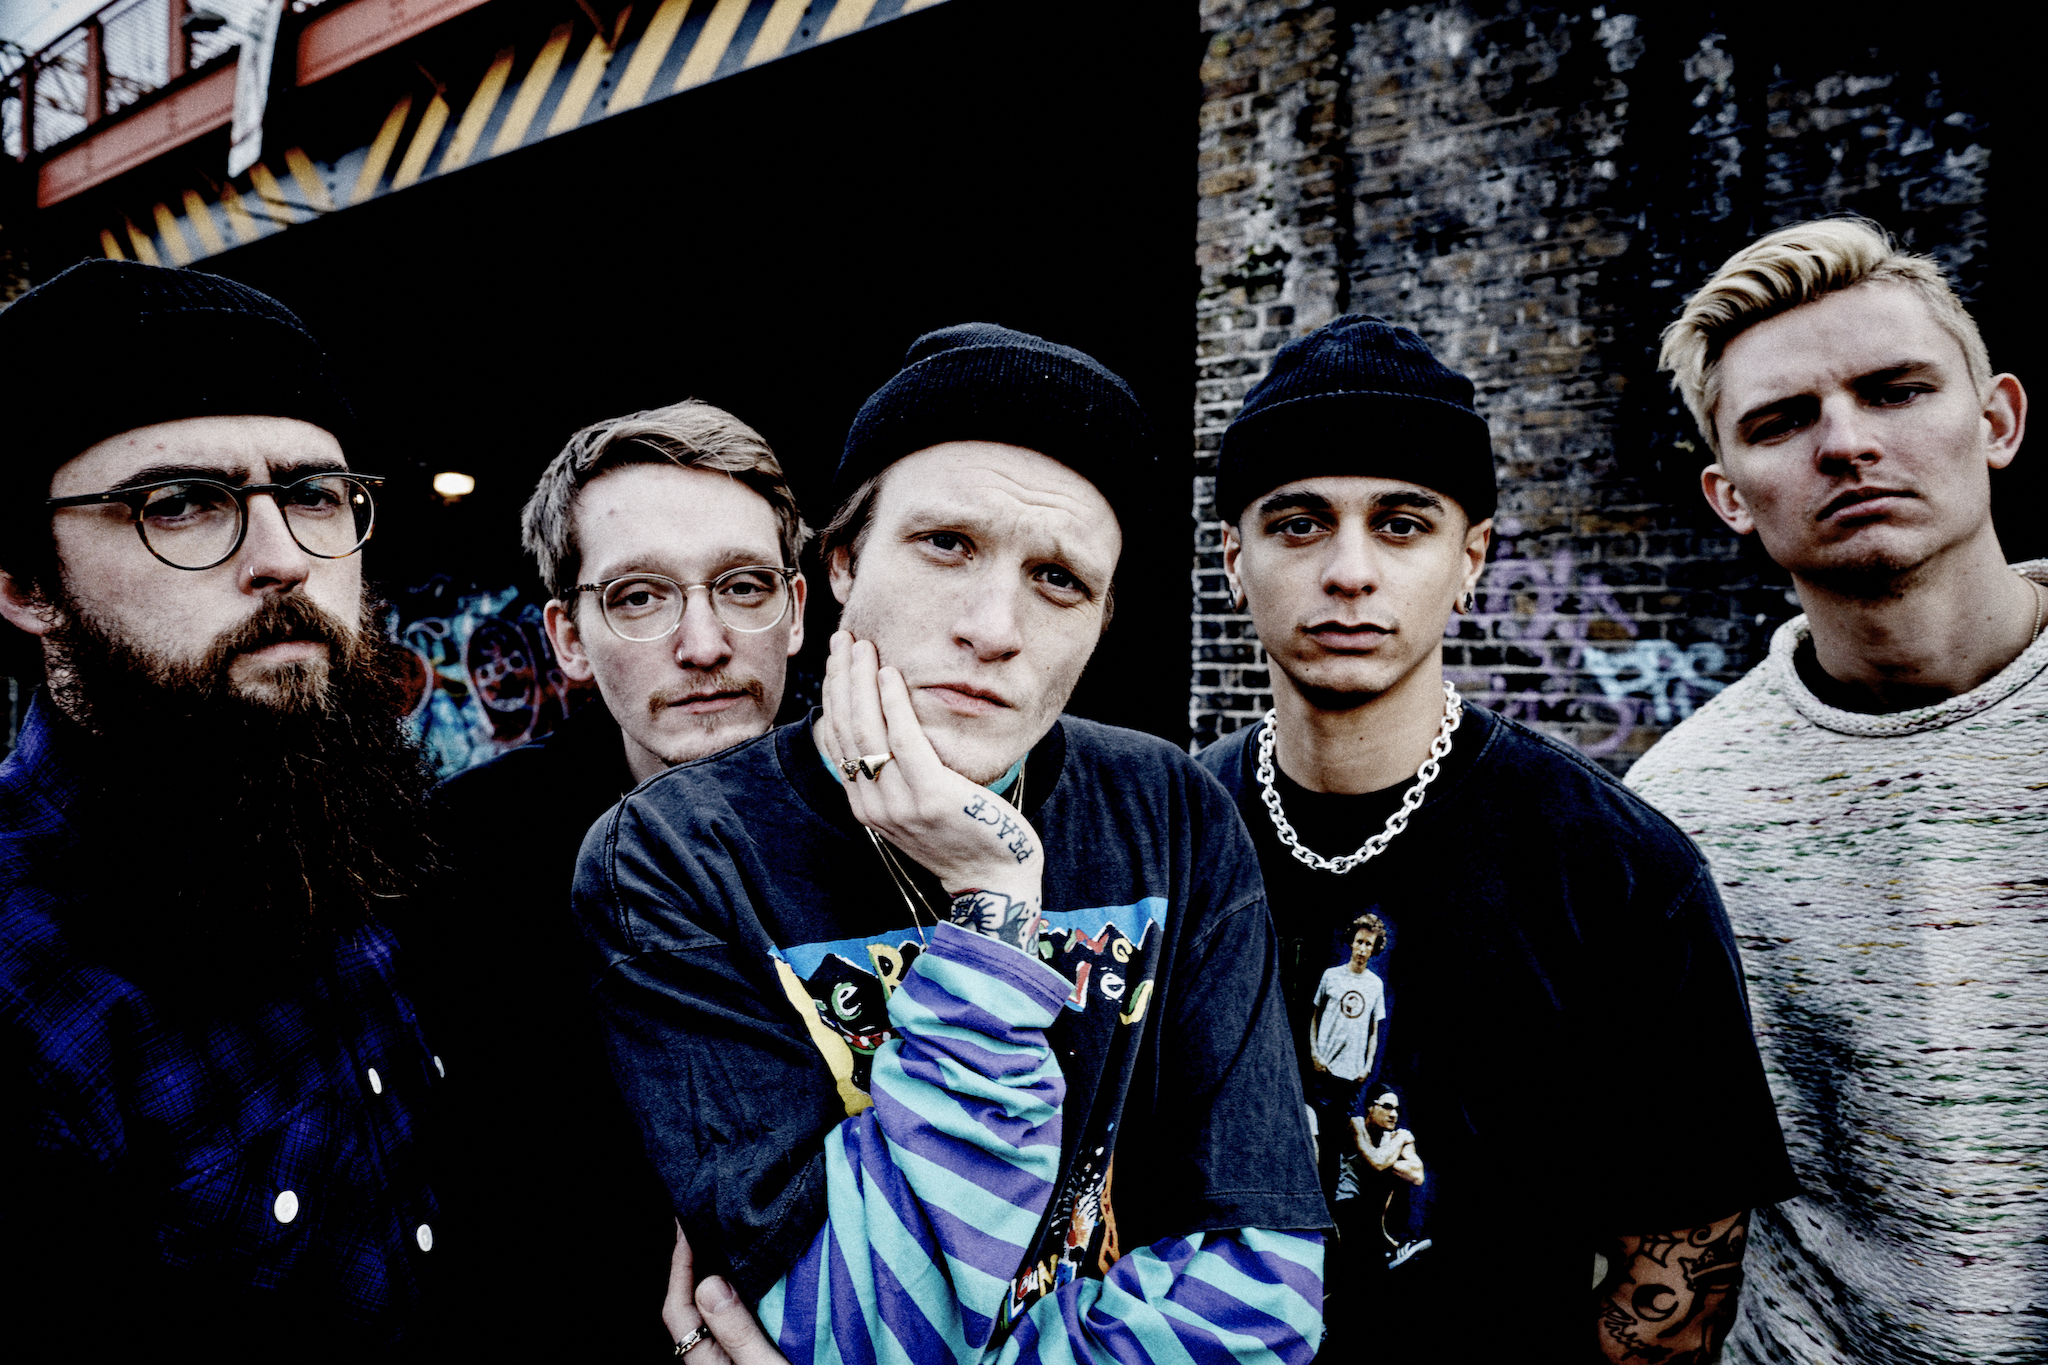 INTERVIEW: Neck Deep discuss new album, 'All Distortions Are Intentional'